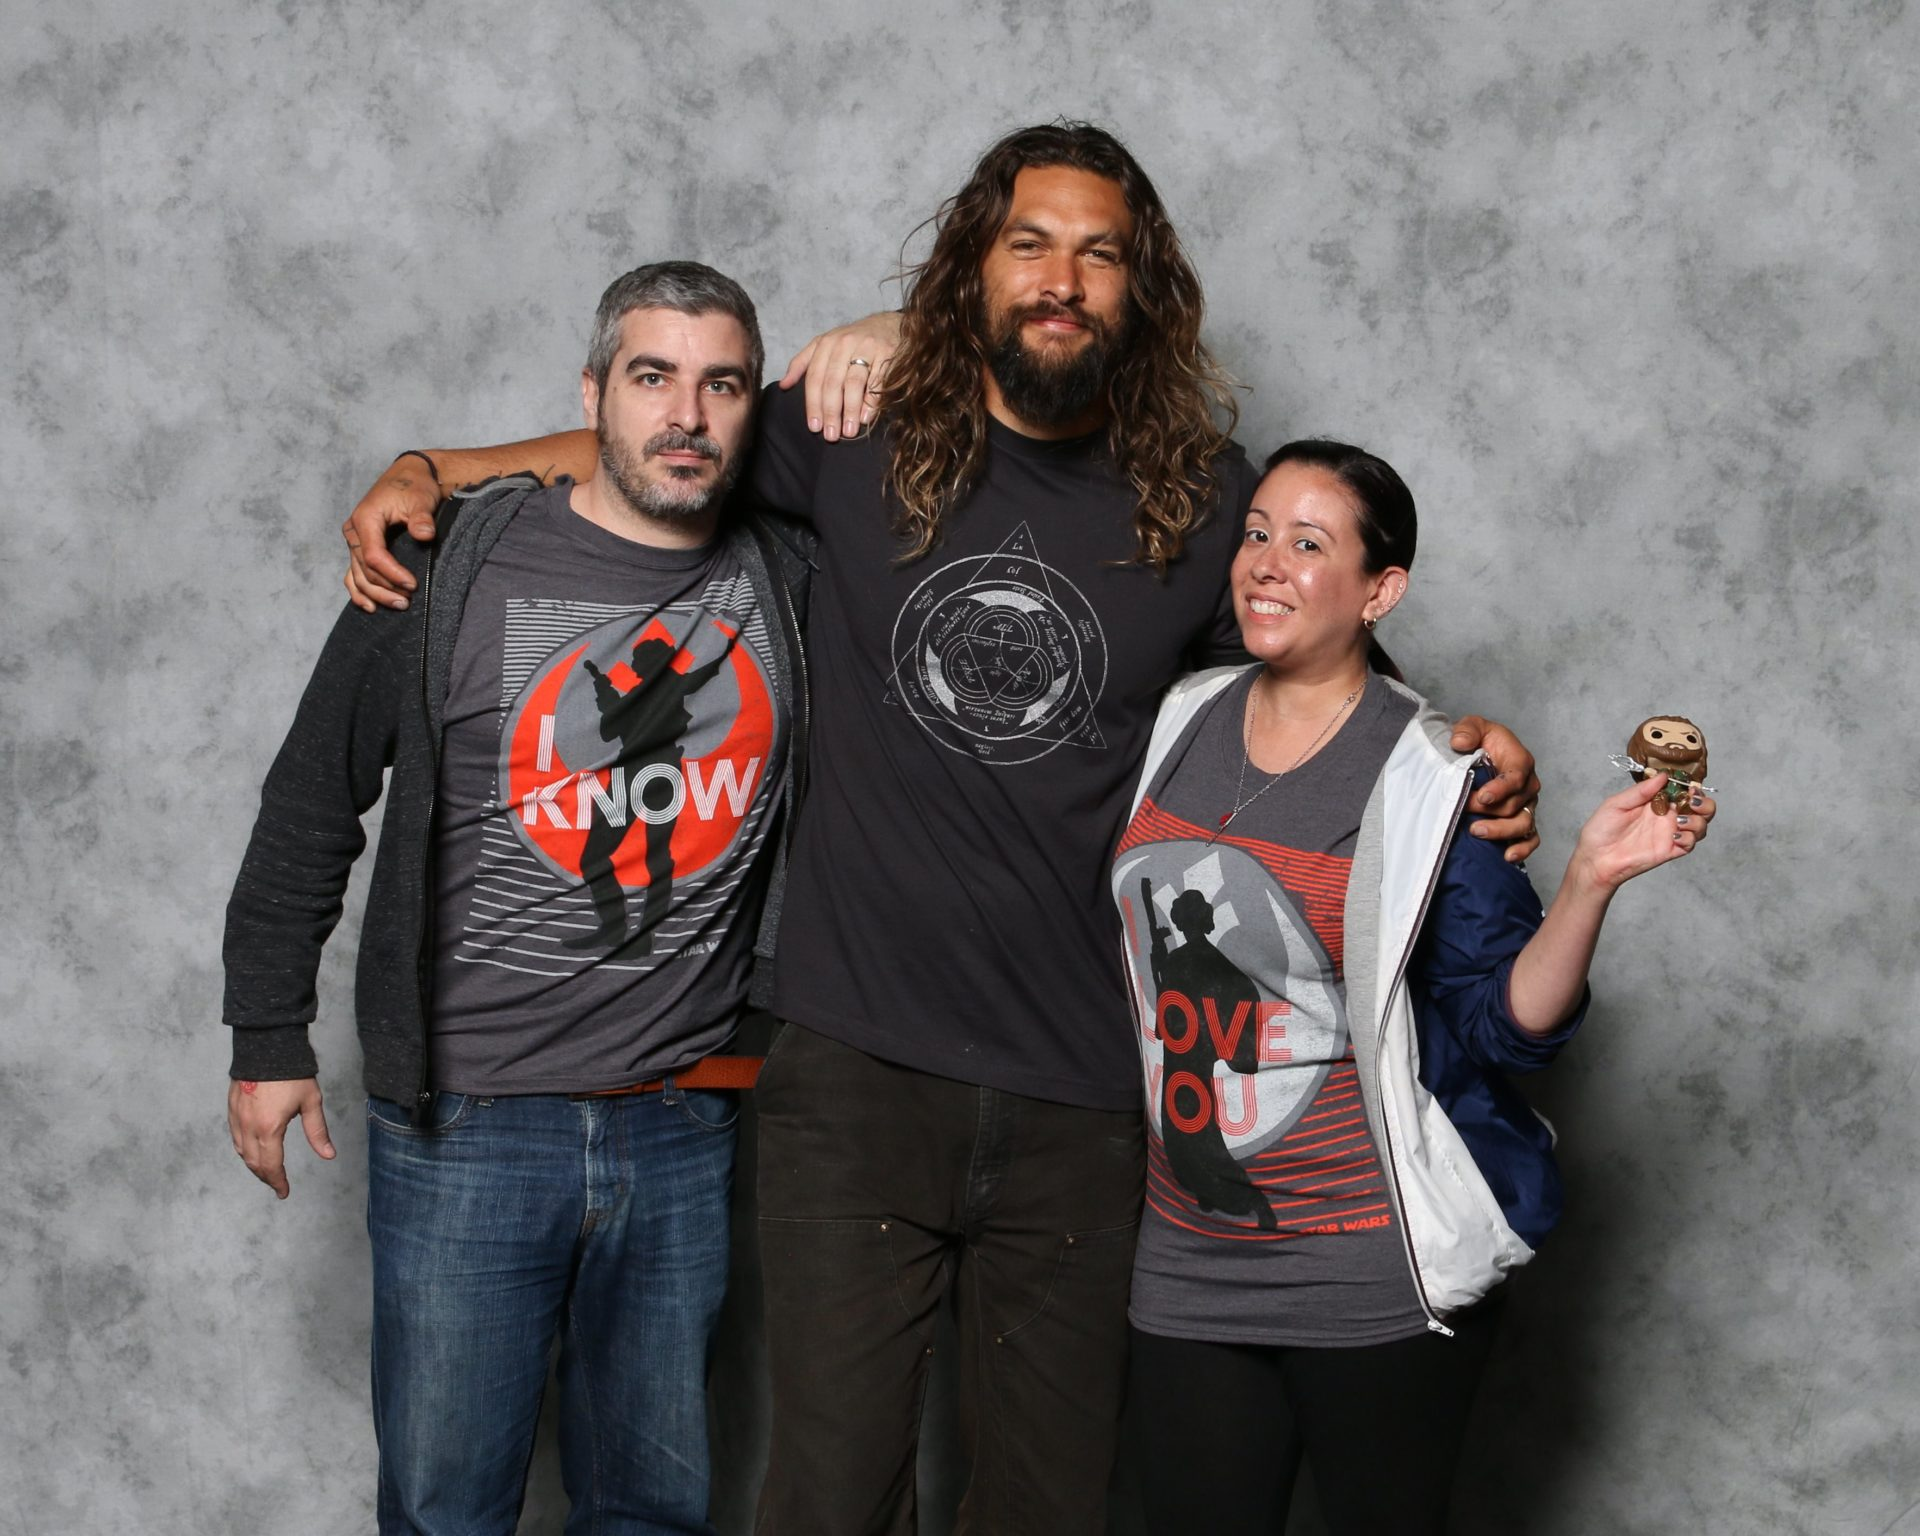 Meeting jason momoa a real life love story frolic meeting jason momoa a real life love story m4hsunfo